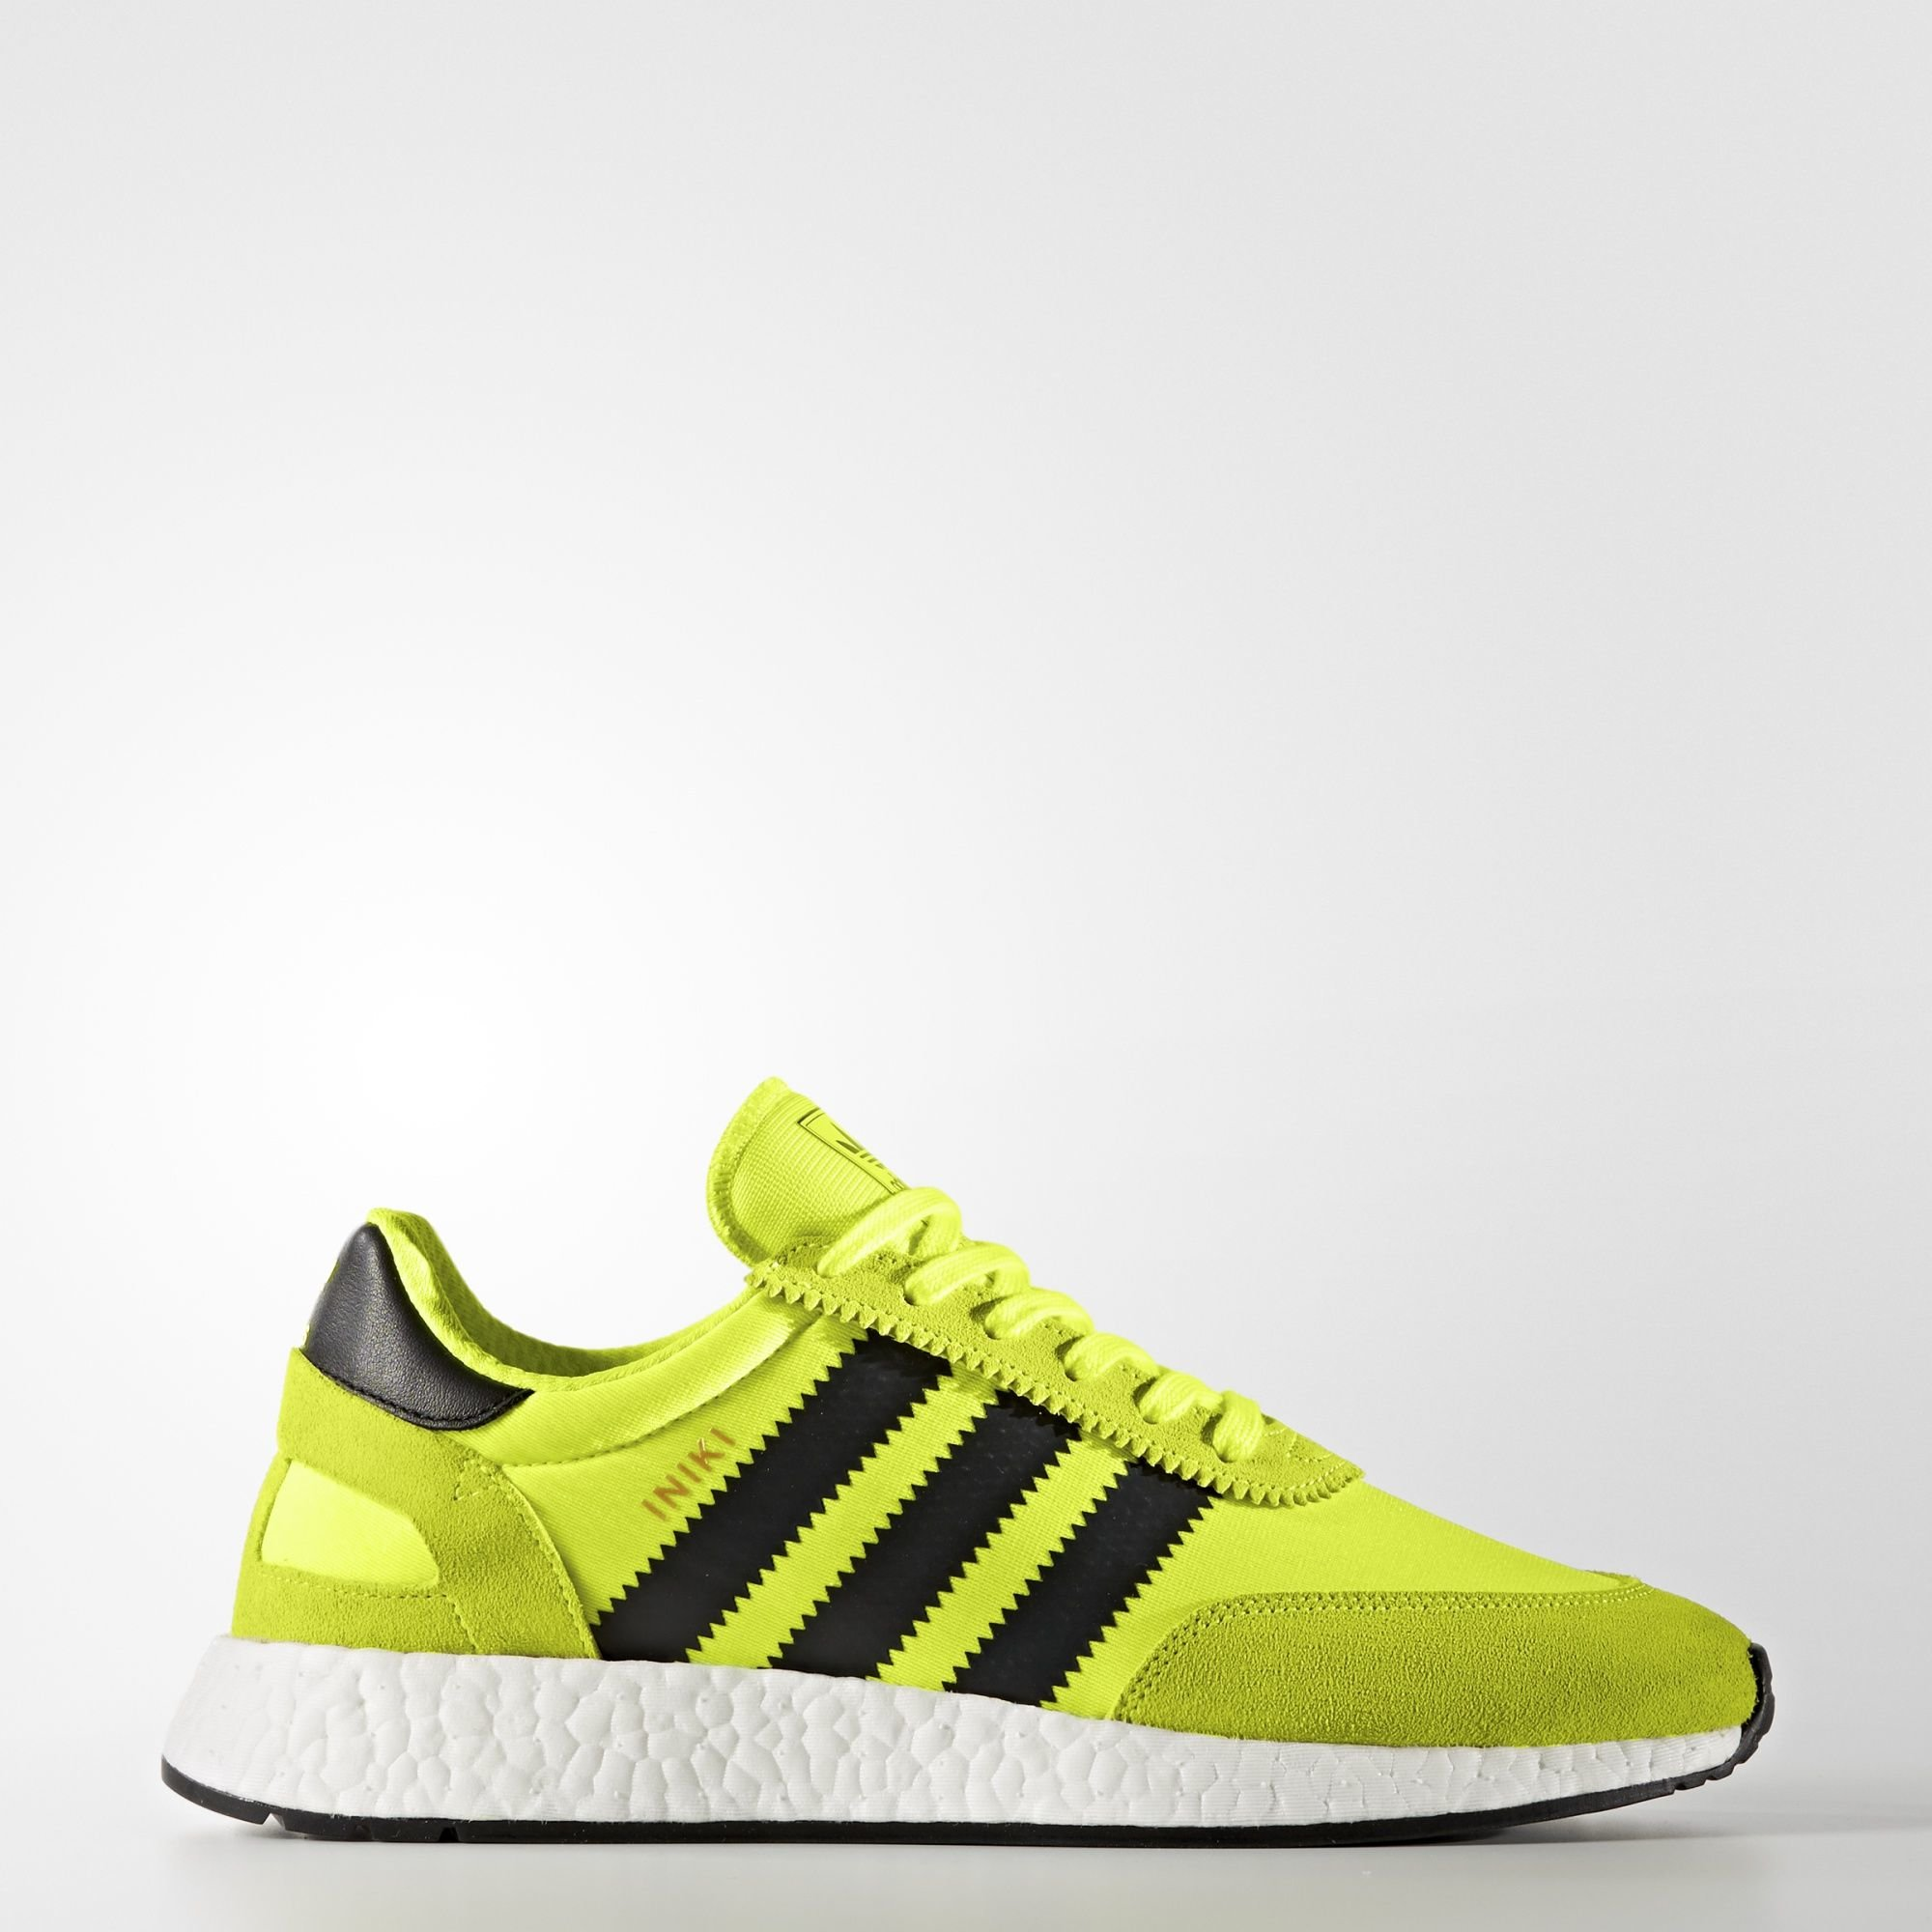 adidas Iniki Runner Volt Black (BB2094)